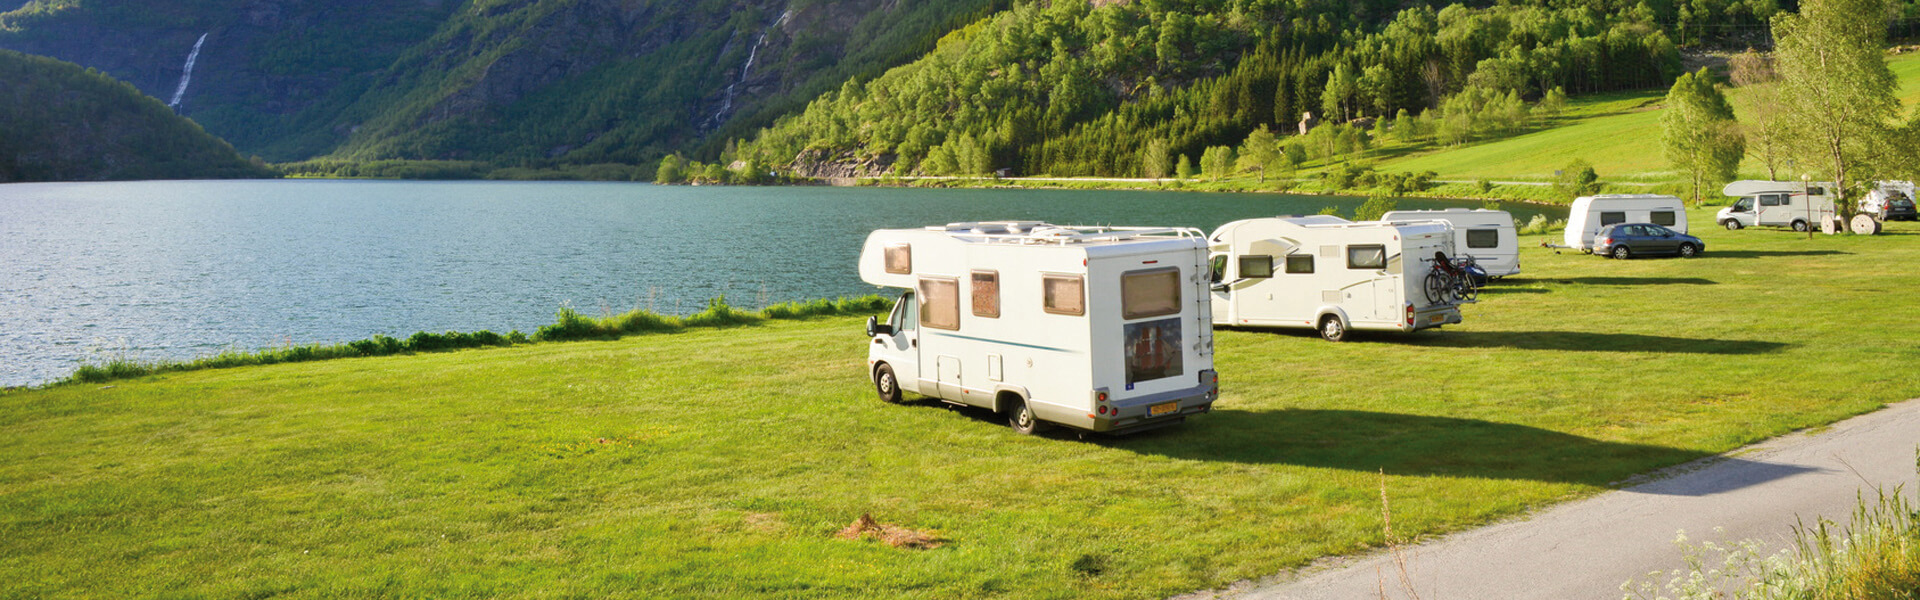 Wohnmobil Camping am See